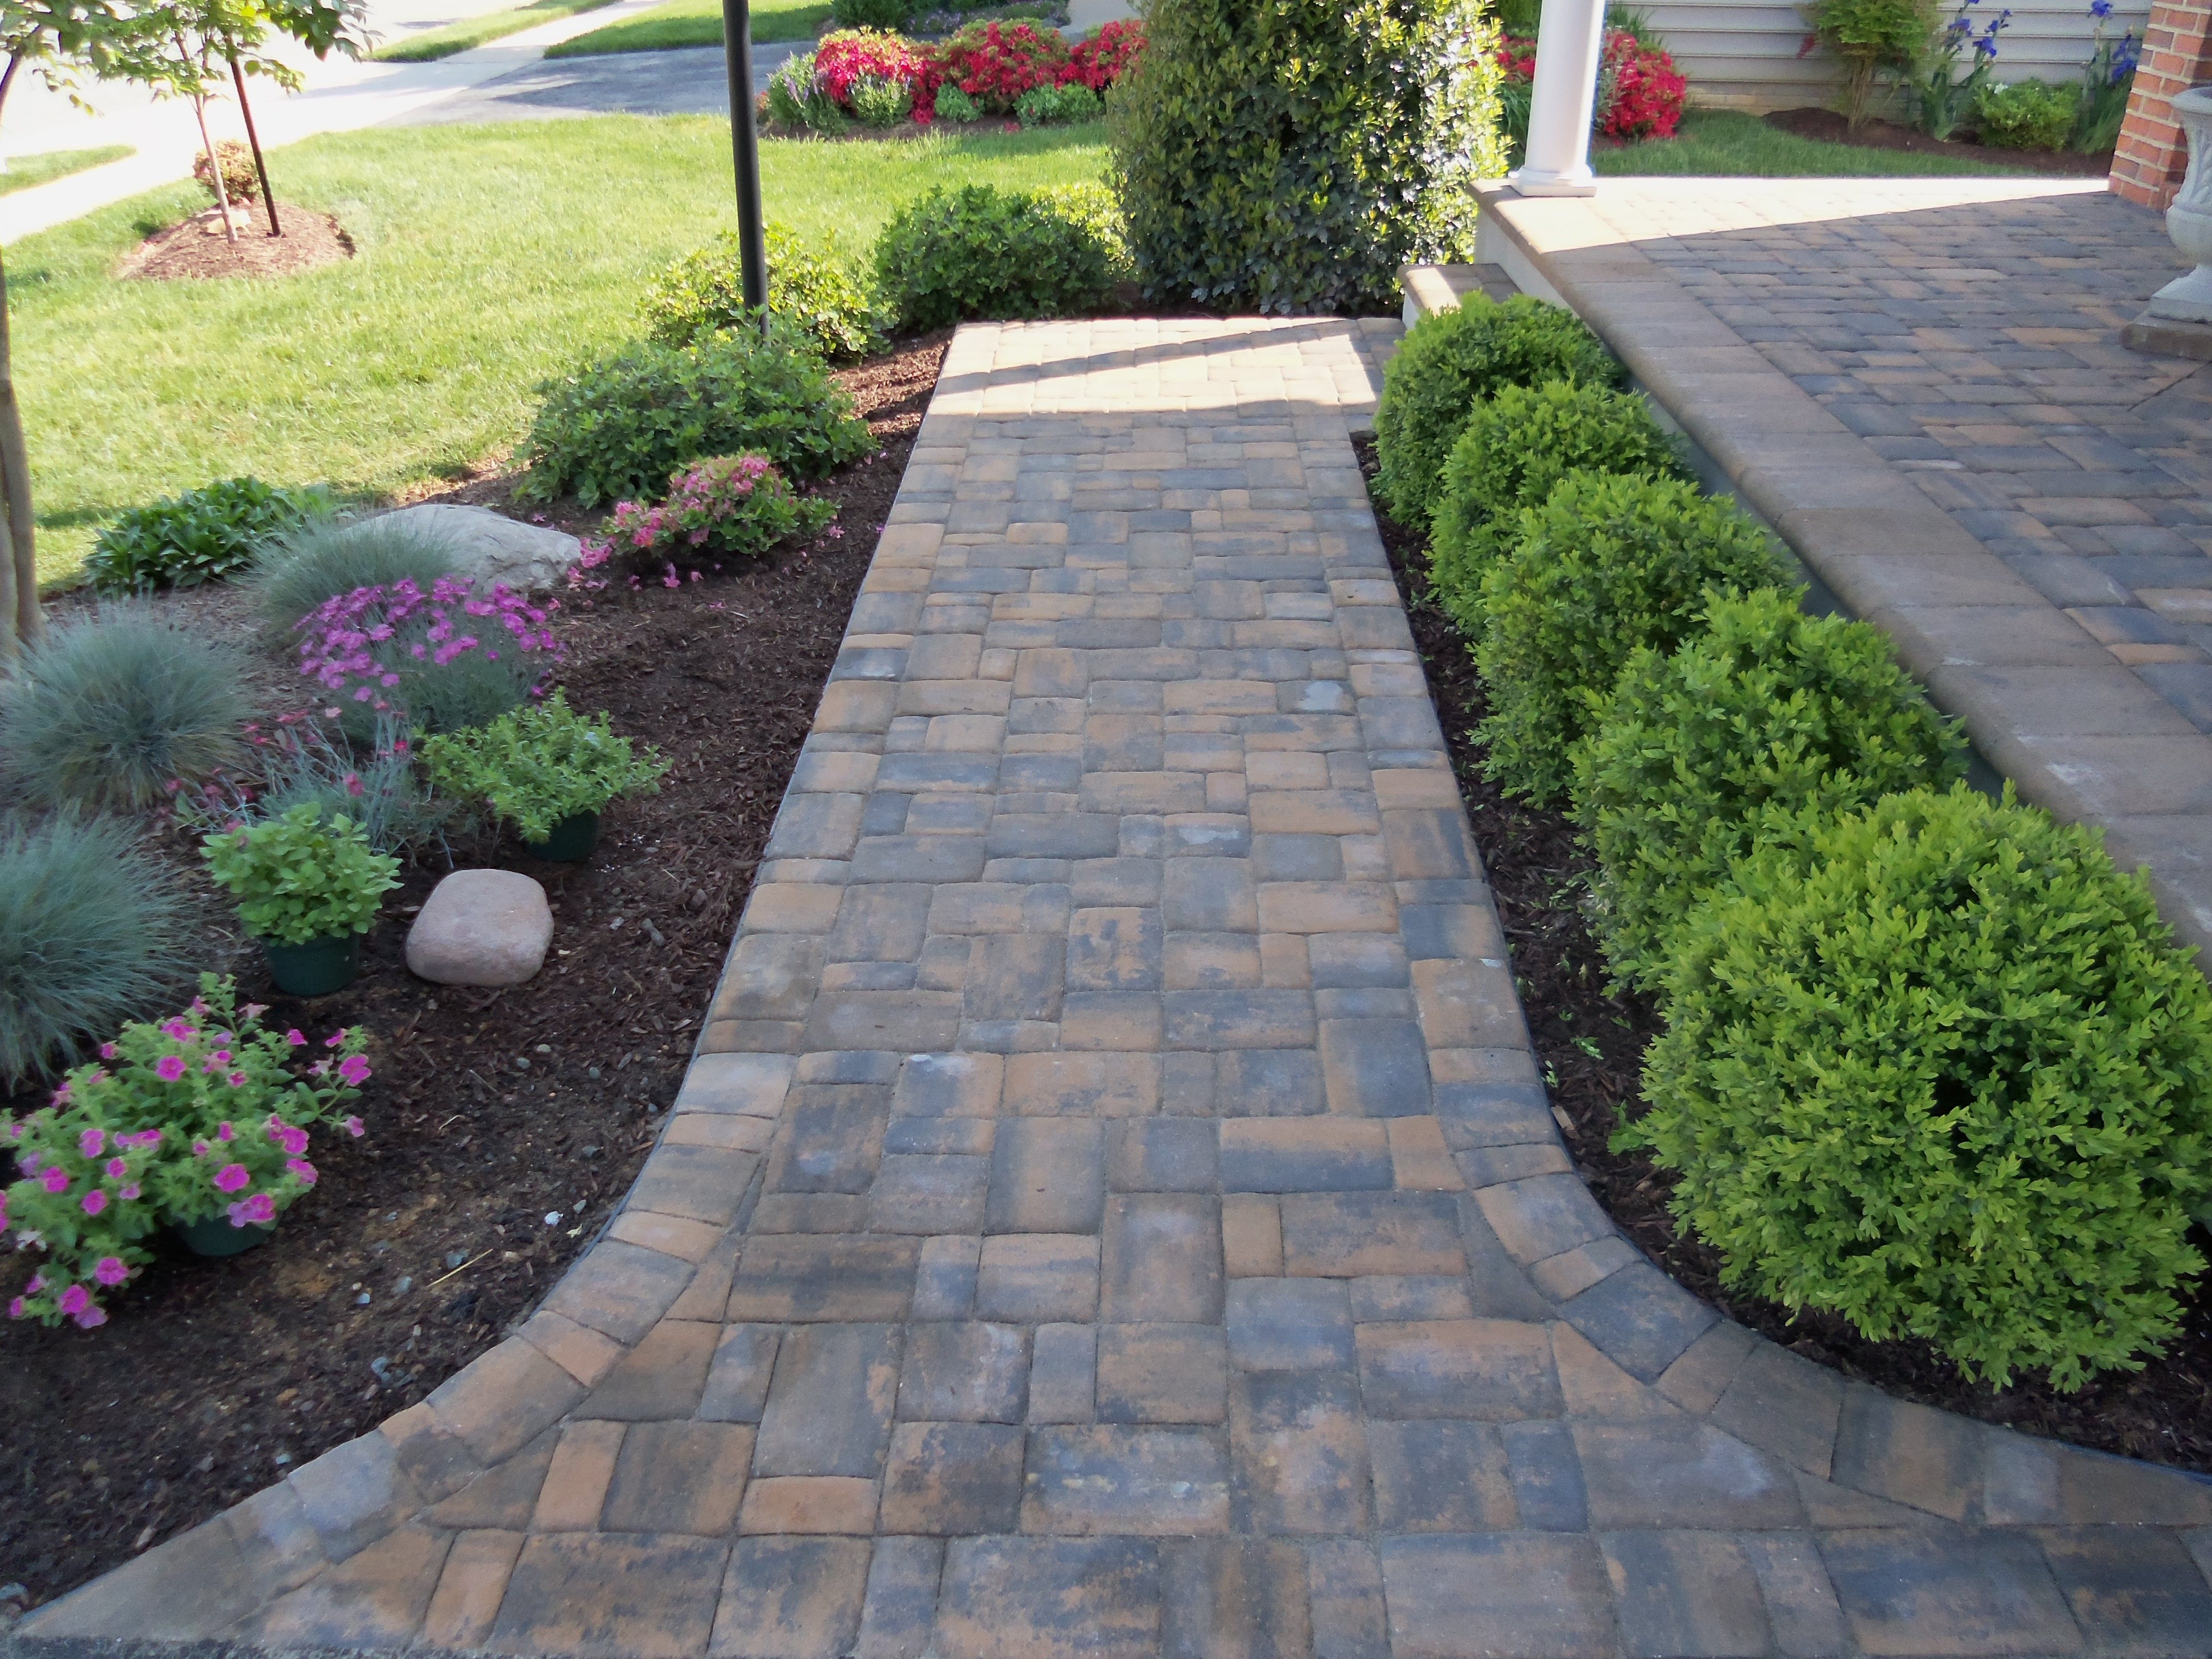 landscaping ideas between porch and sidewalk porch when you can this beautiful brick paver. Black Bedroom Furniture Sets. Home Design Ideas